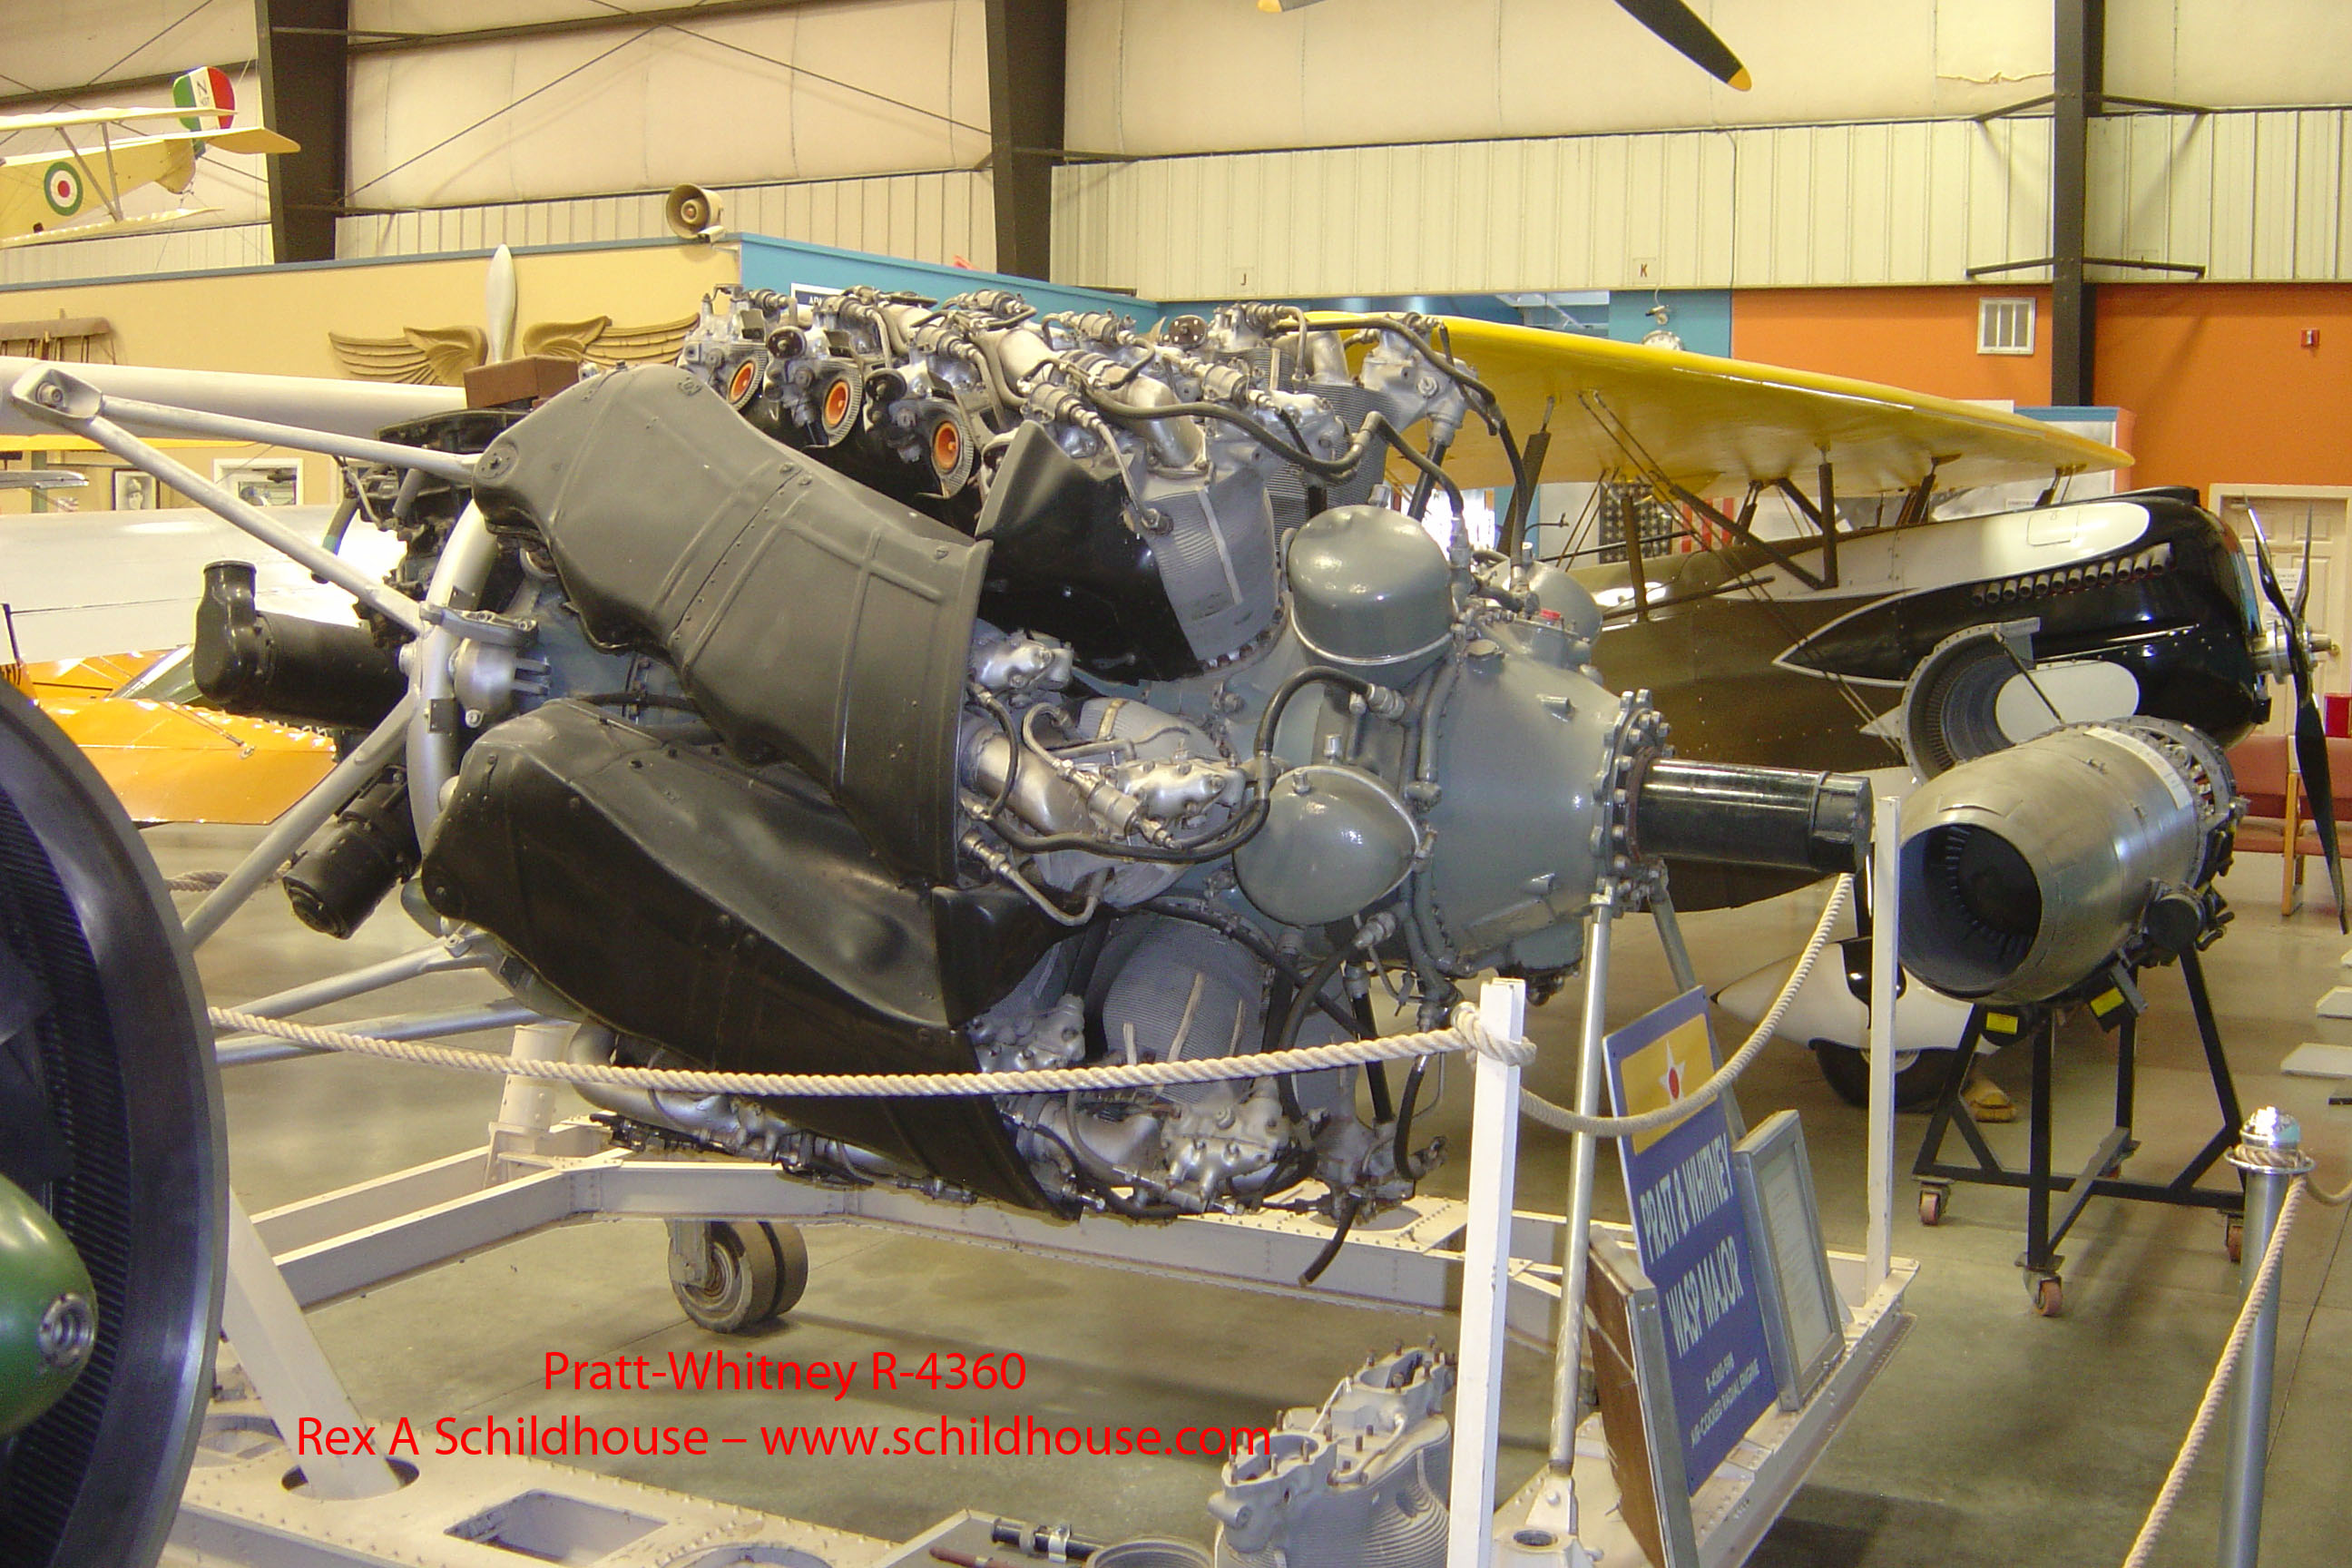 Pratt & Whitney R-4360 Radial Engine